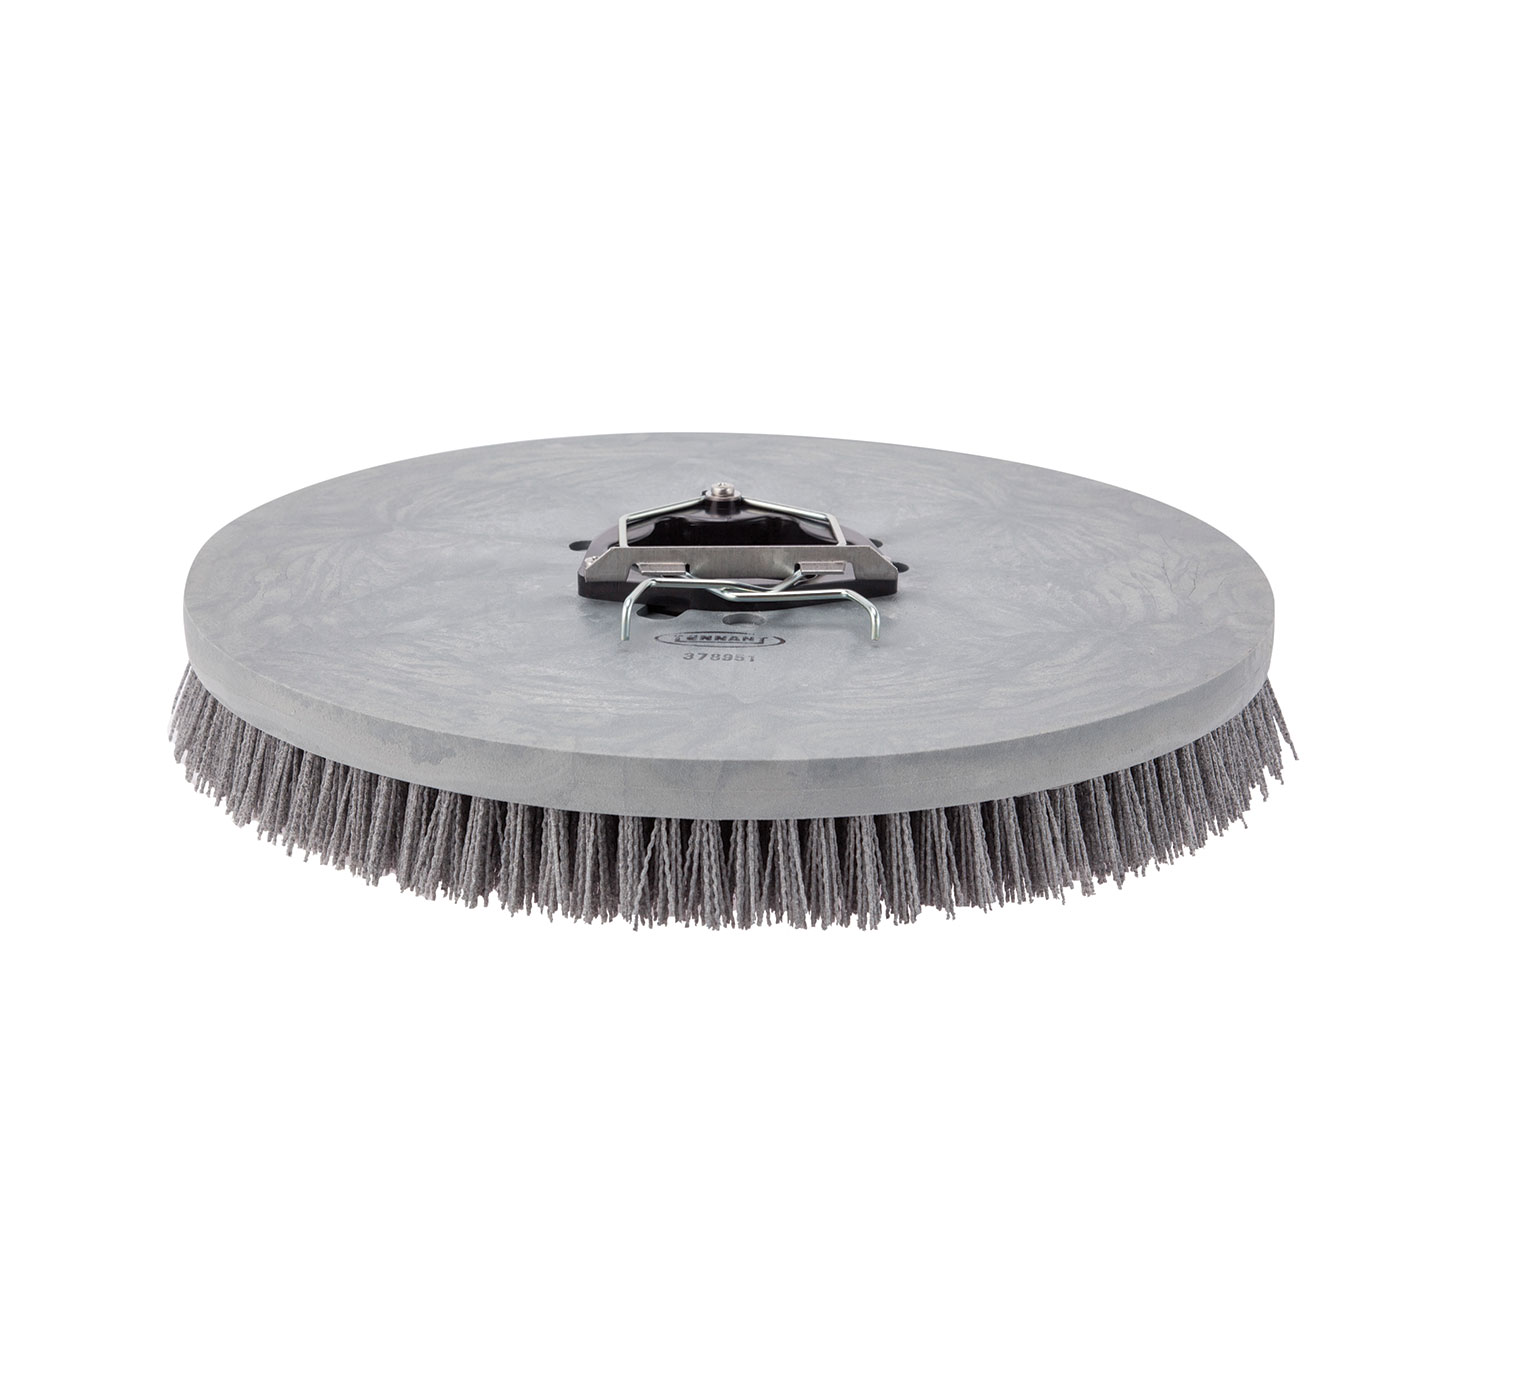 378951 Super Abrasive Disk Scrub Brush – 20 in / 508 mm alt 1